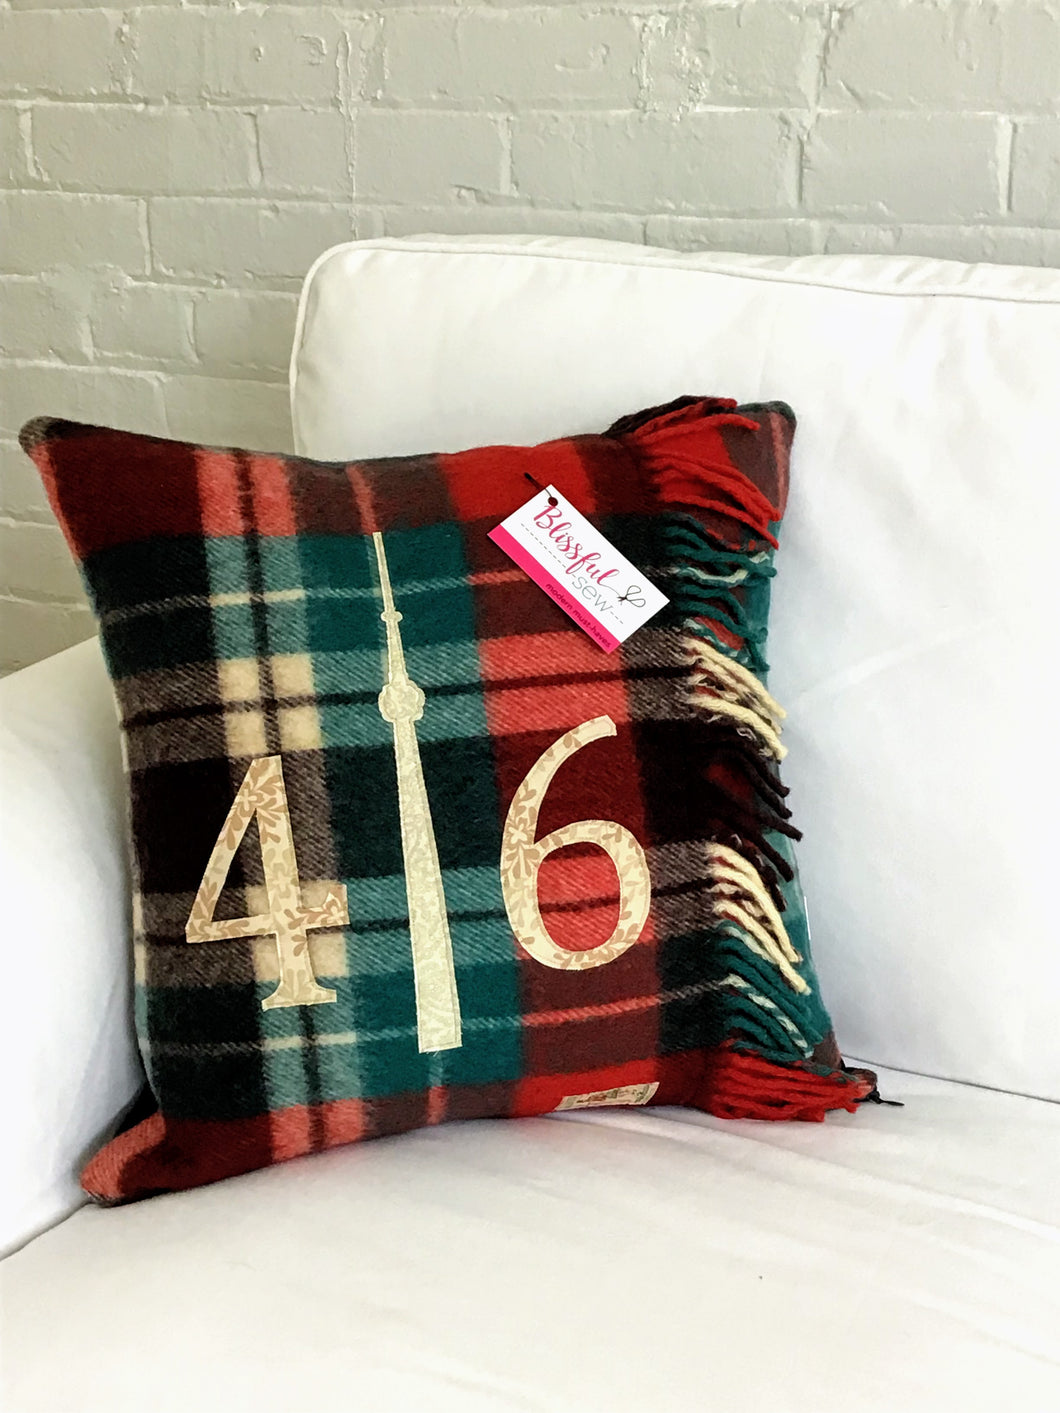 Felted Wool Blanket Pillow - Christmasy plaid background with mottled rust numbers and cream CN Tower. Incorporates the blanket fringe as soft adornment on front. Has the original blanket